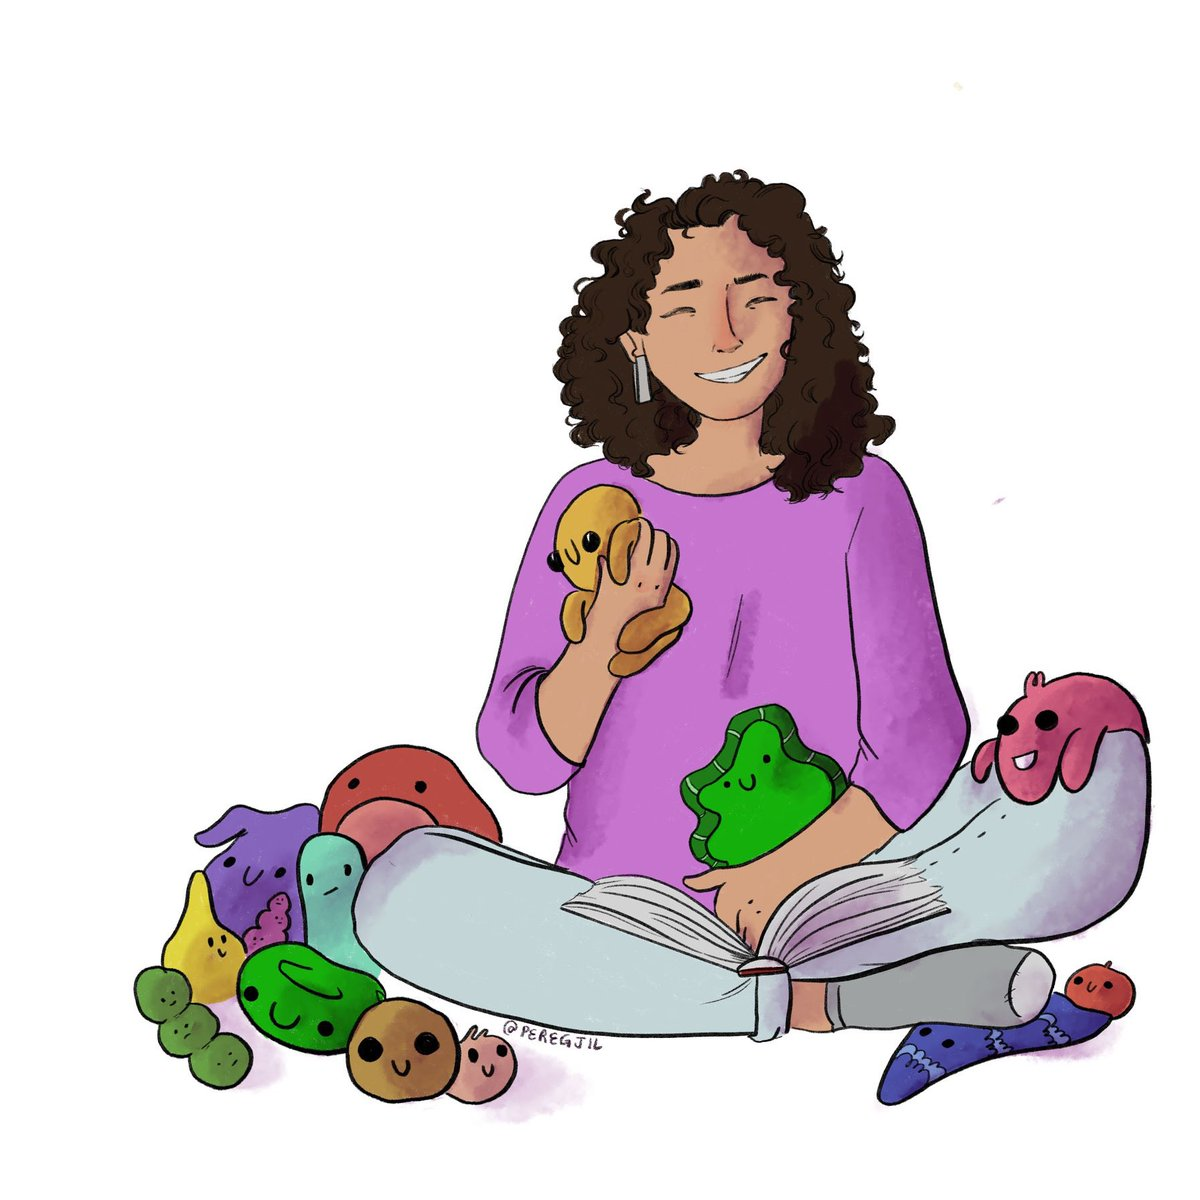 So many new followers this summer! Hi!! I am Ana, I'm from Colombia and I have a PhD in Biomedical Engineering. I am trained in tissue engineering and used to study  valves and now @CornellFellows I study the human gut microbiome. #LatinainSTEM 1/n Illustration by: @peregjil <br>http://pic.twitter.com/Eeq3waRPf3